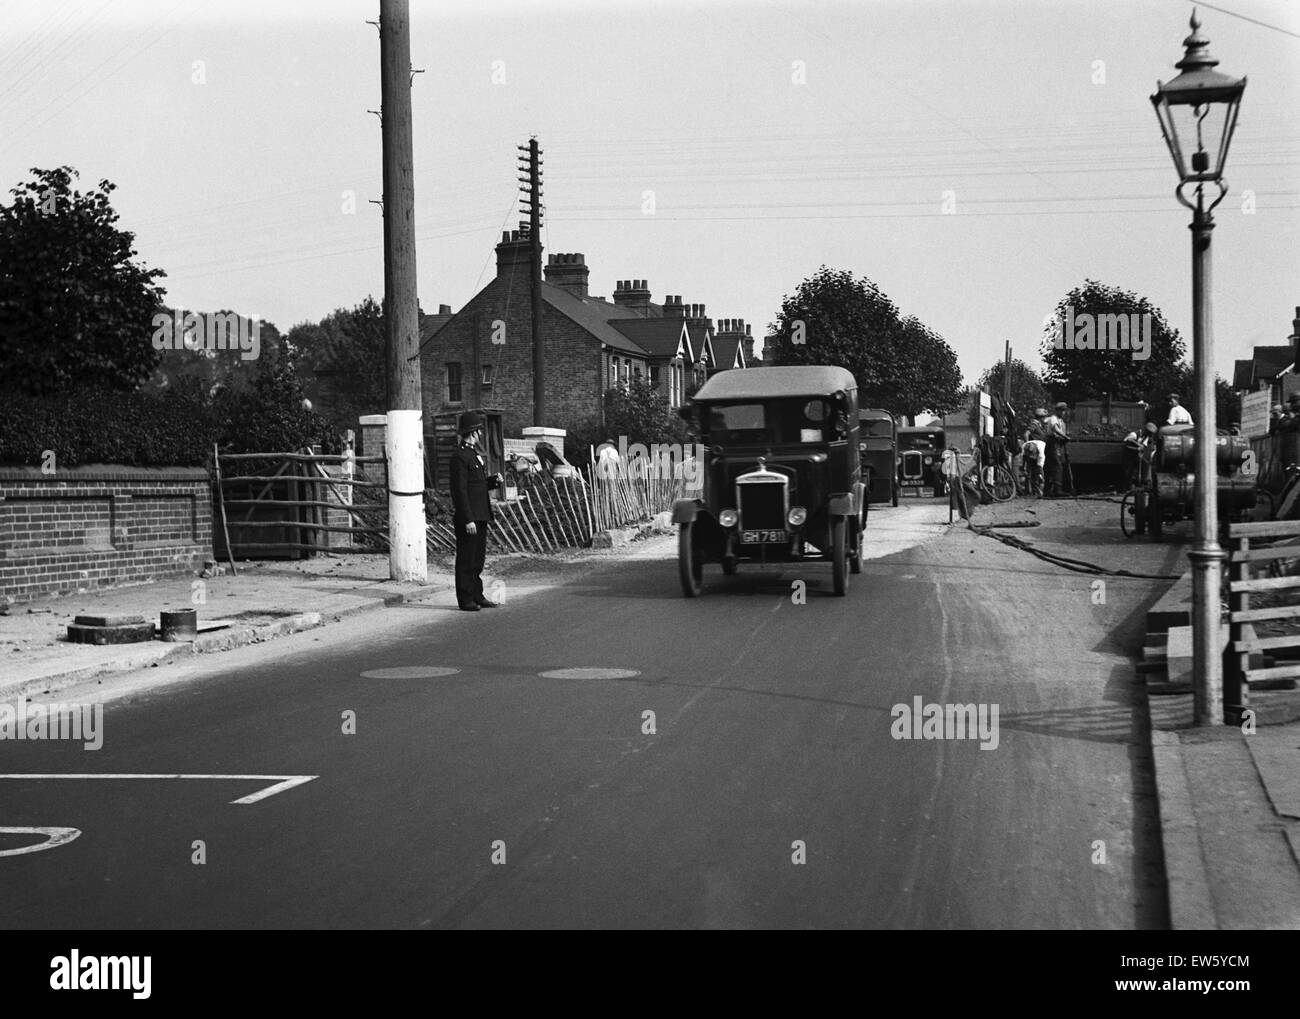 Police direct traffic as workmen repair the road in an unknown location in Uxbridge, London. Circa 1931 - Stock Image